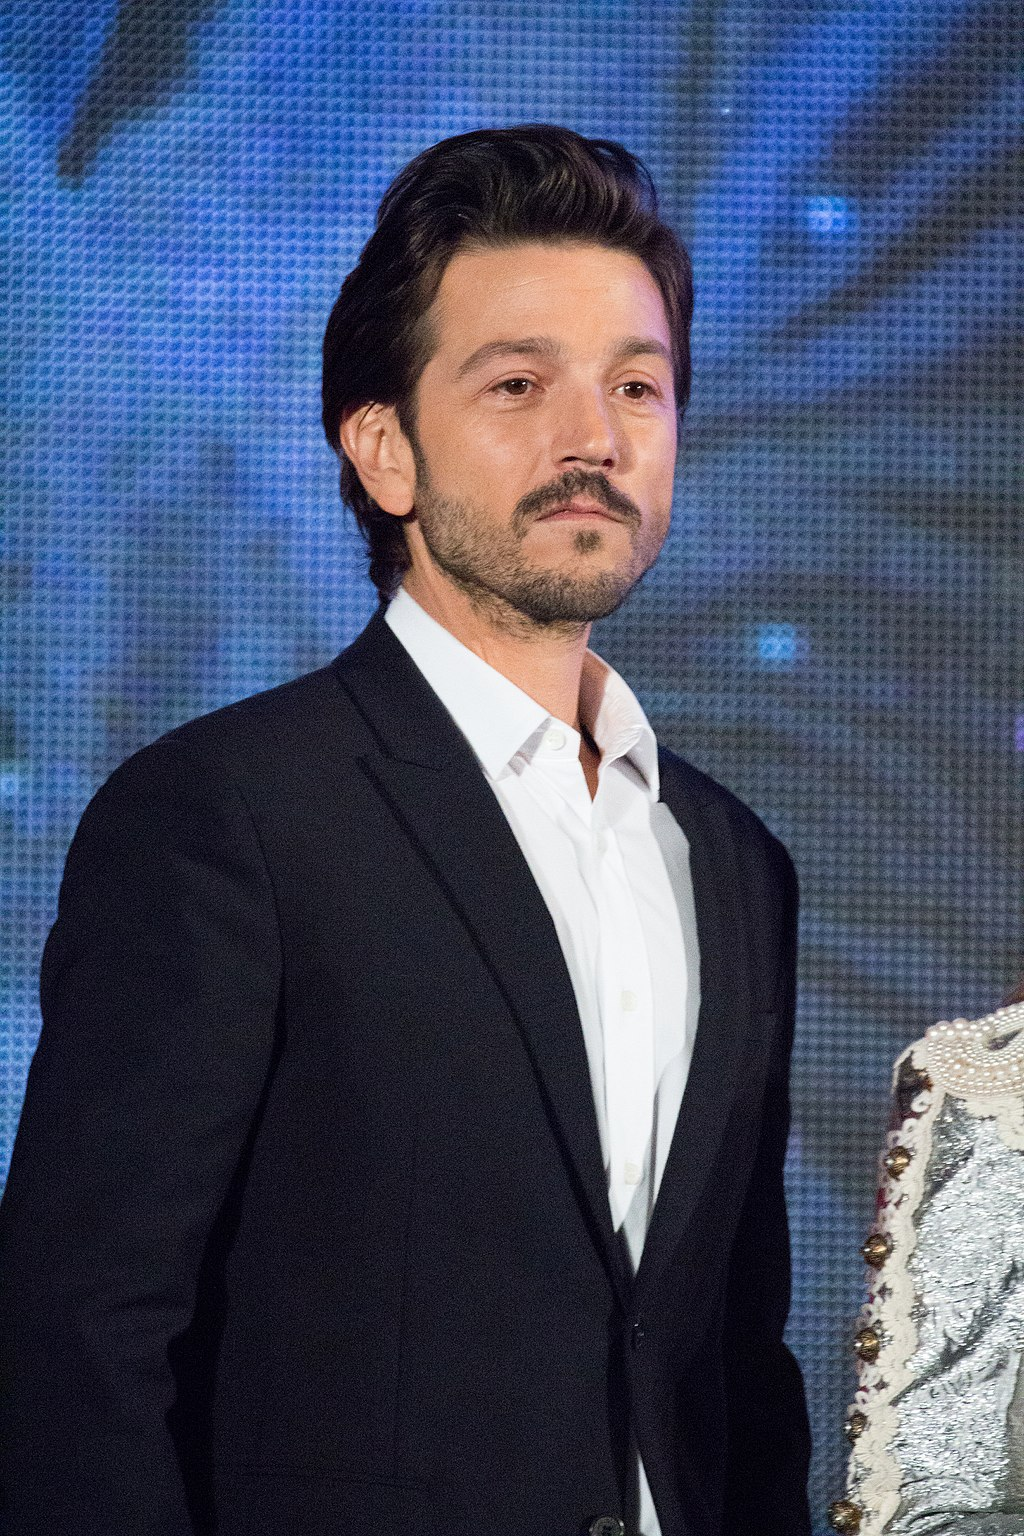 Mexican actor Diego Luna made history by becoming the first Latin main lead with Rogue One: A Star Wars Story